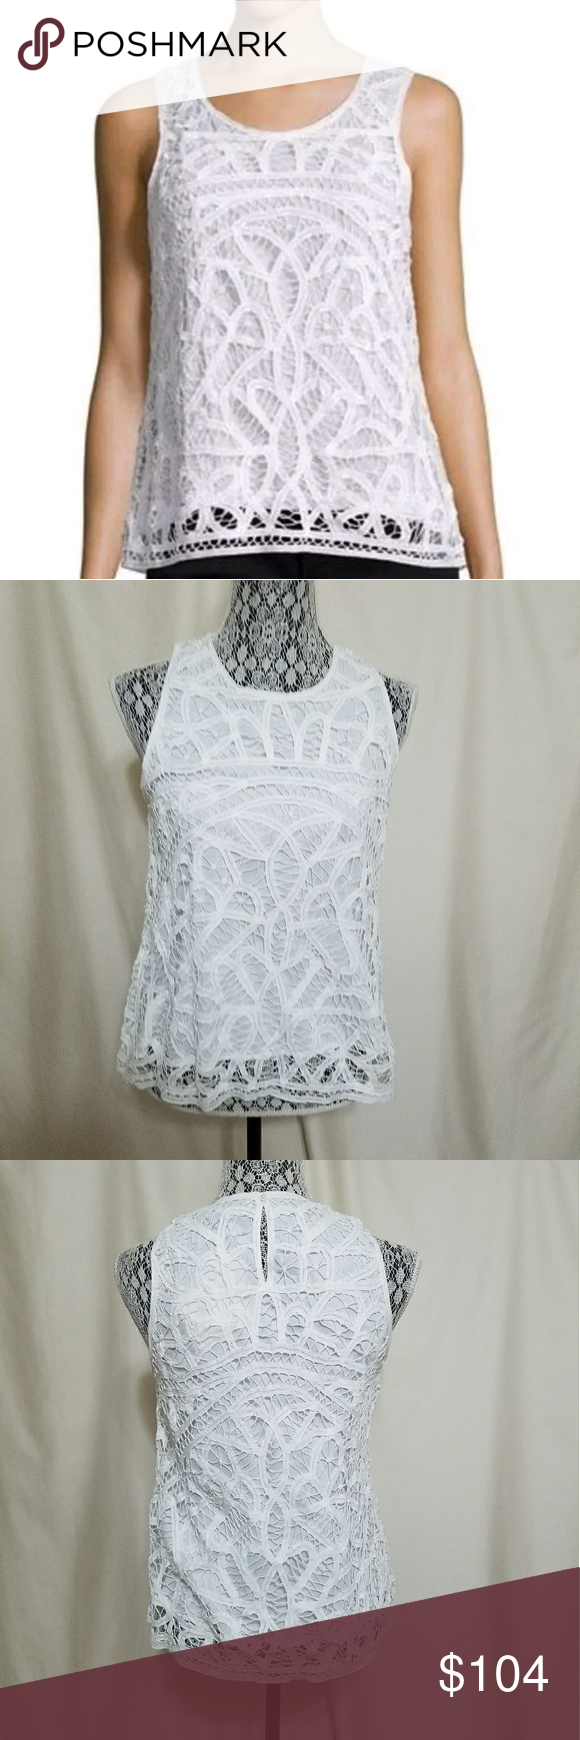 """Joie white cotton Blouse NWT. MSRP 248 USD. Size M. Made it 100%cotton. Bust 20.5"""" . Length 24"""". Tops Blouses"""